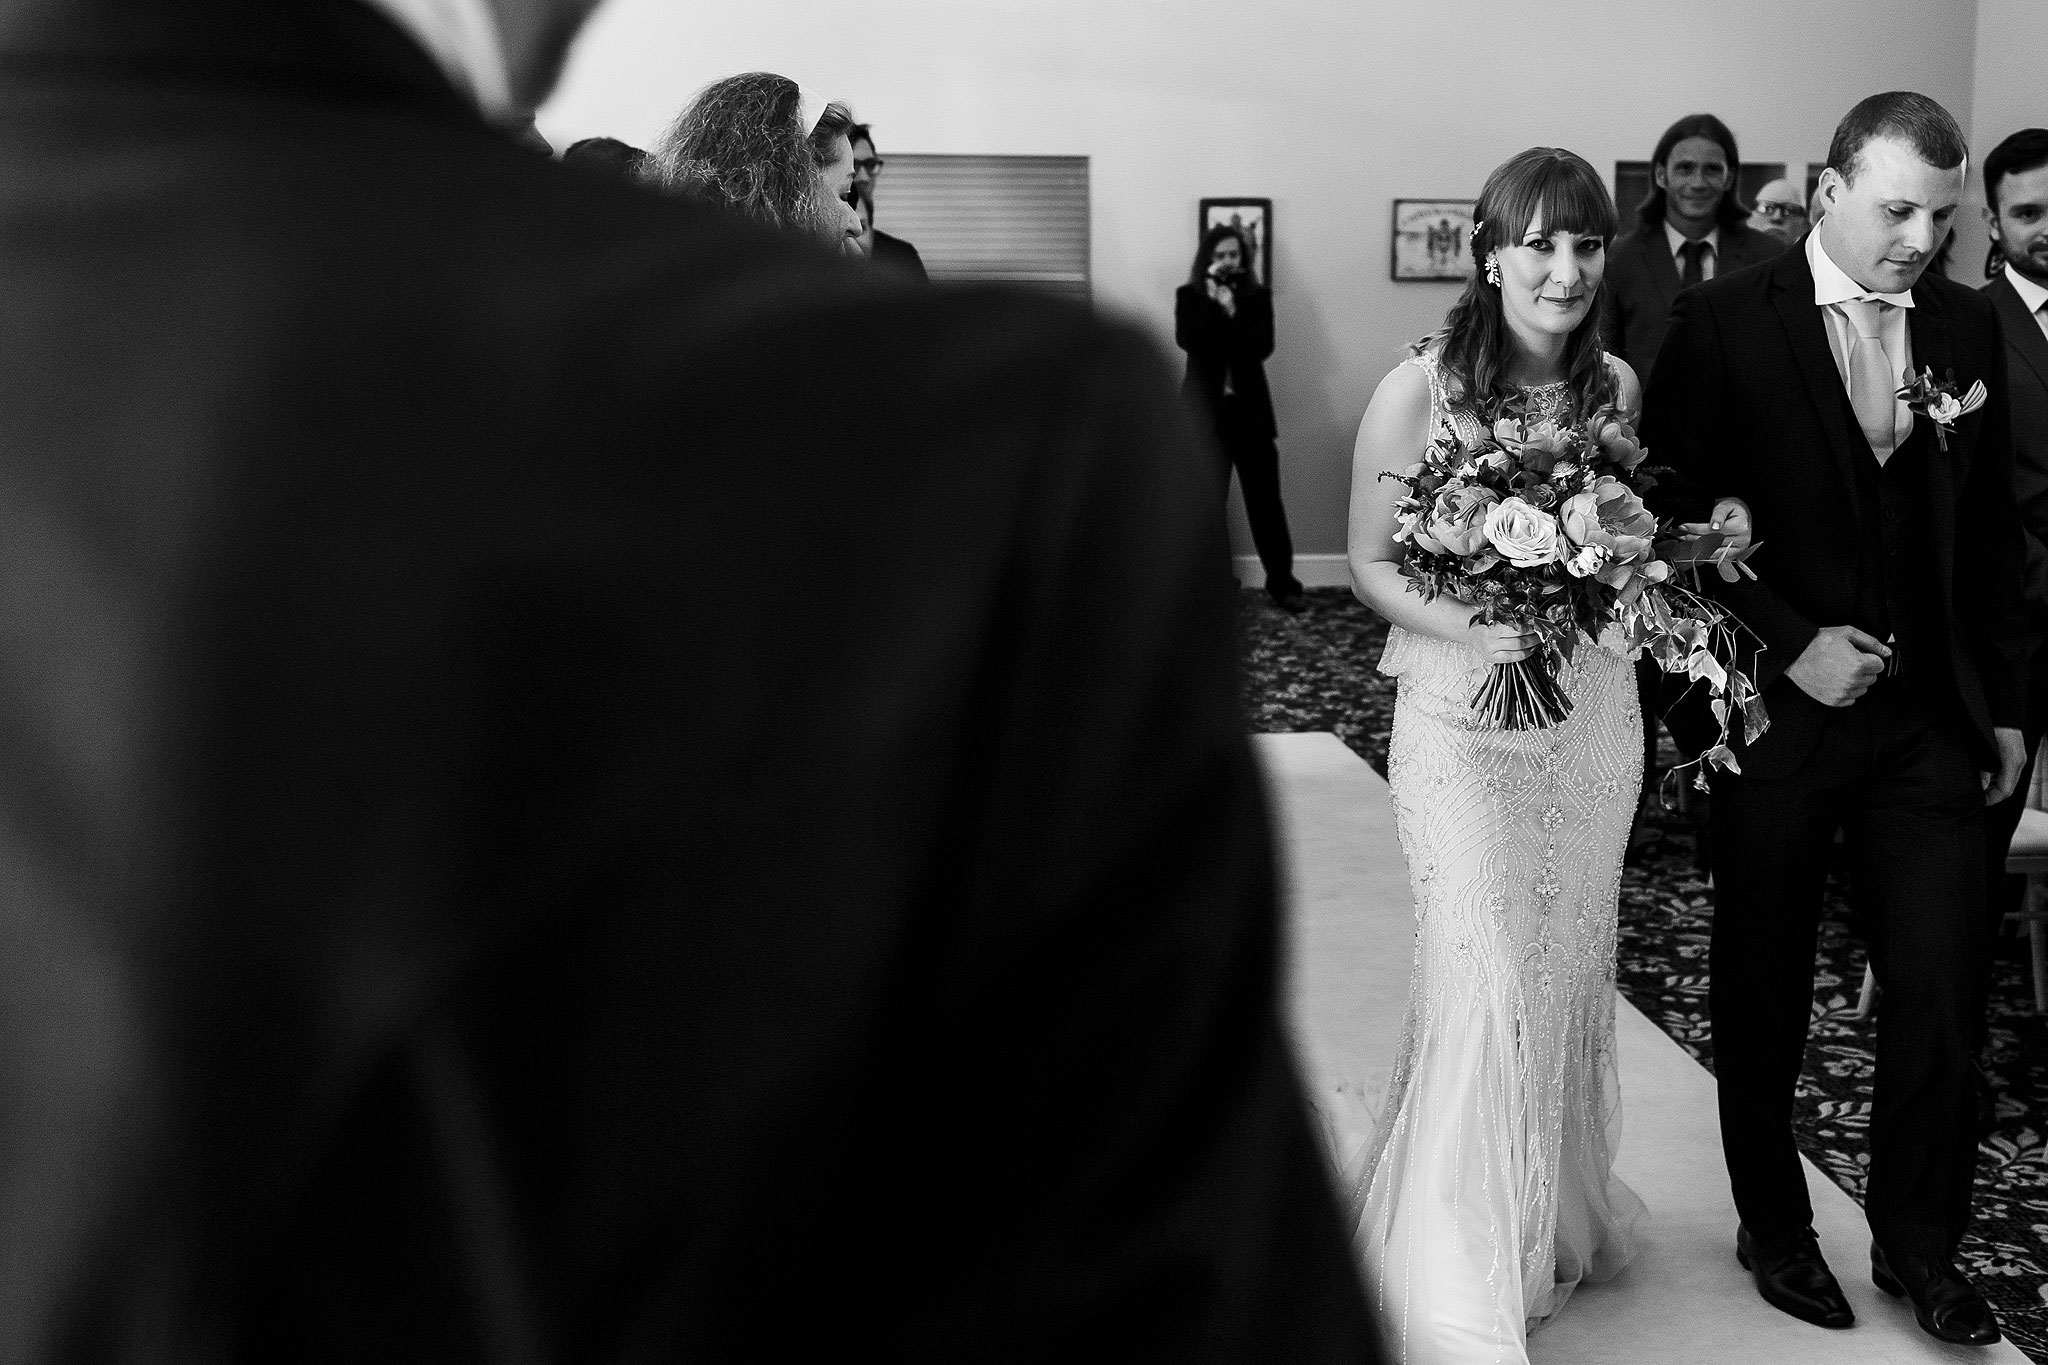 Bride walking down the aisle in beaded wedding dress - The Villa at Wrea Green Wedding Photography - Toni Darcy Photography